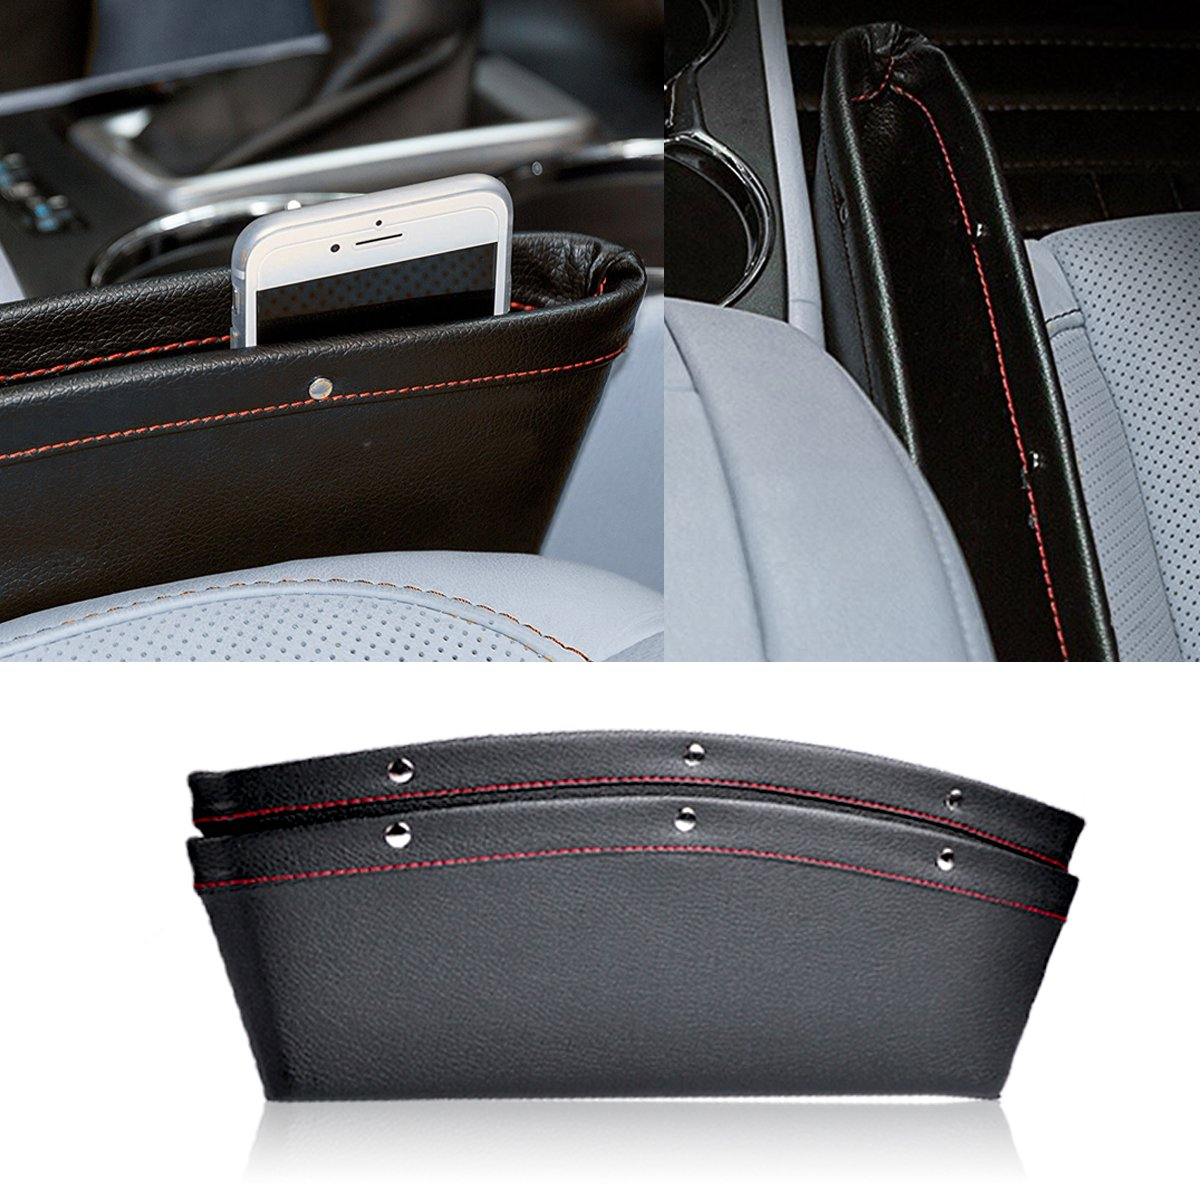 PU Leather Console Gap Filler for Cellphone Wallet Car Seat Caddy Catcher and Car Seat Console Organizer AutoEC Car Seat Gap Filler Eyeglasses and Keys Black,2 Pack